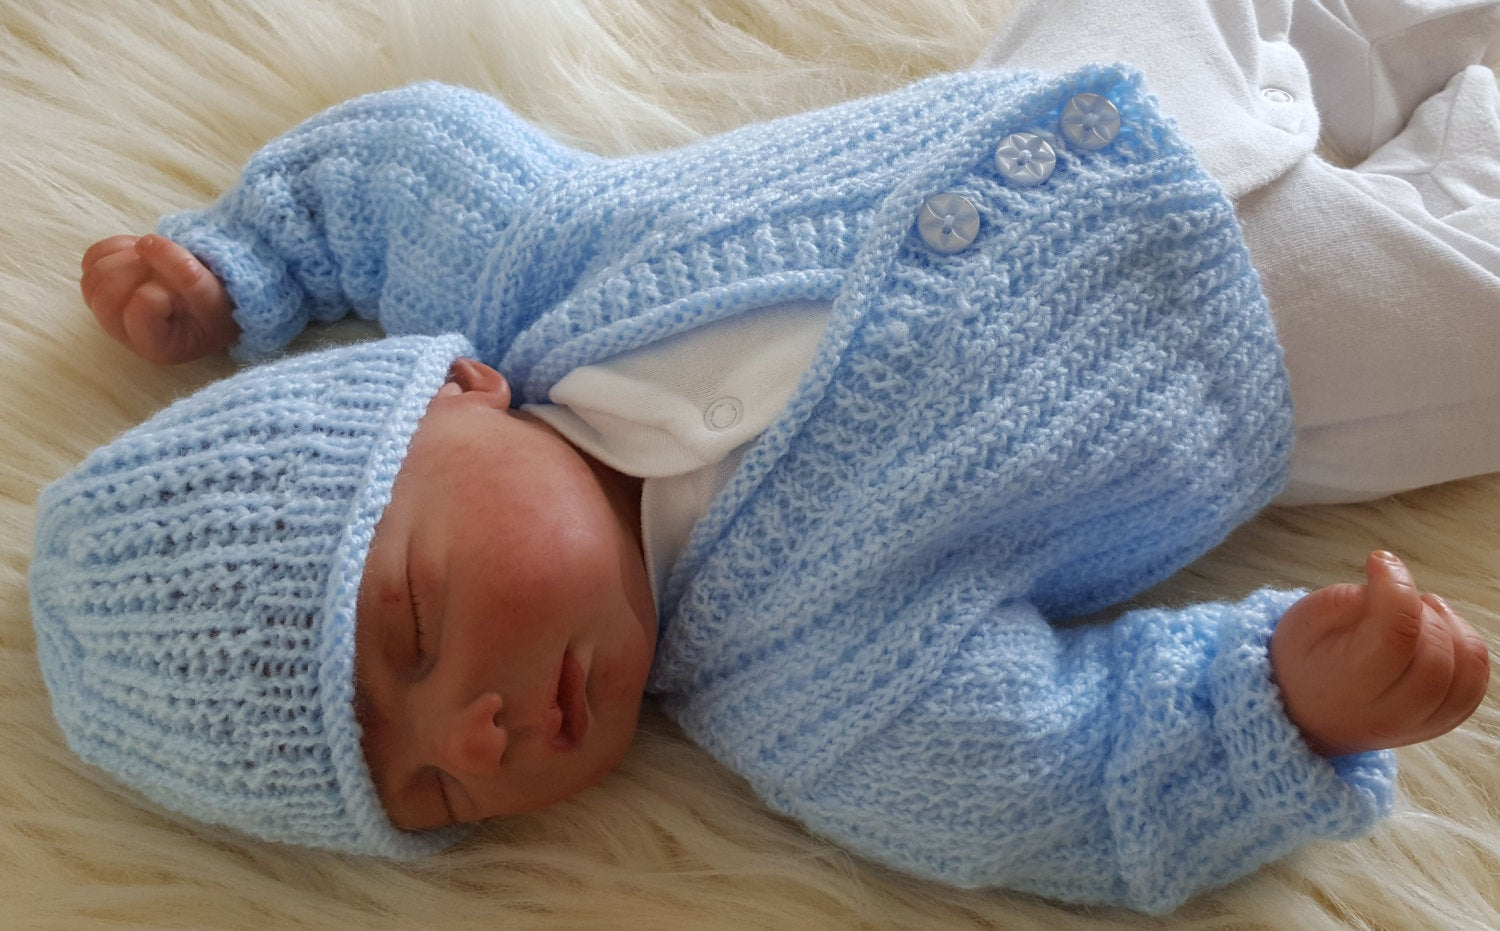 Newborn Knit Patterns A Ba Knitting Pattern Boys Or Reborn Dolls Sweater Set Instant Download Pdf Cardigan Hat Easy Knit Design